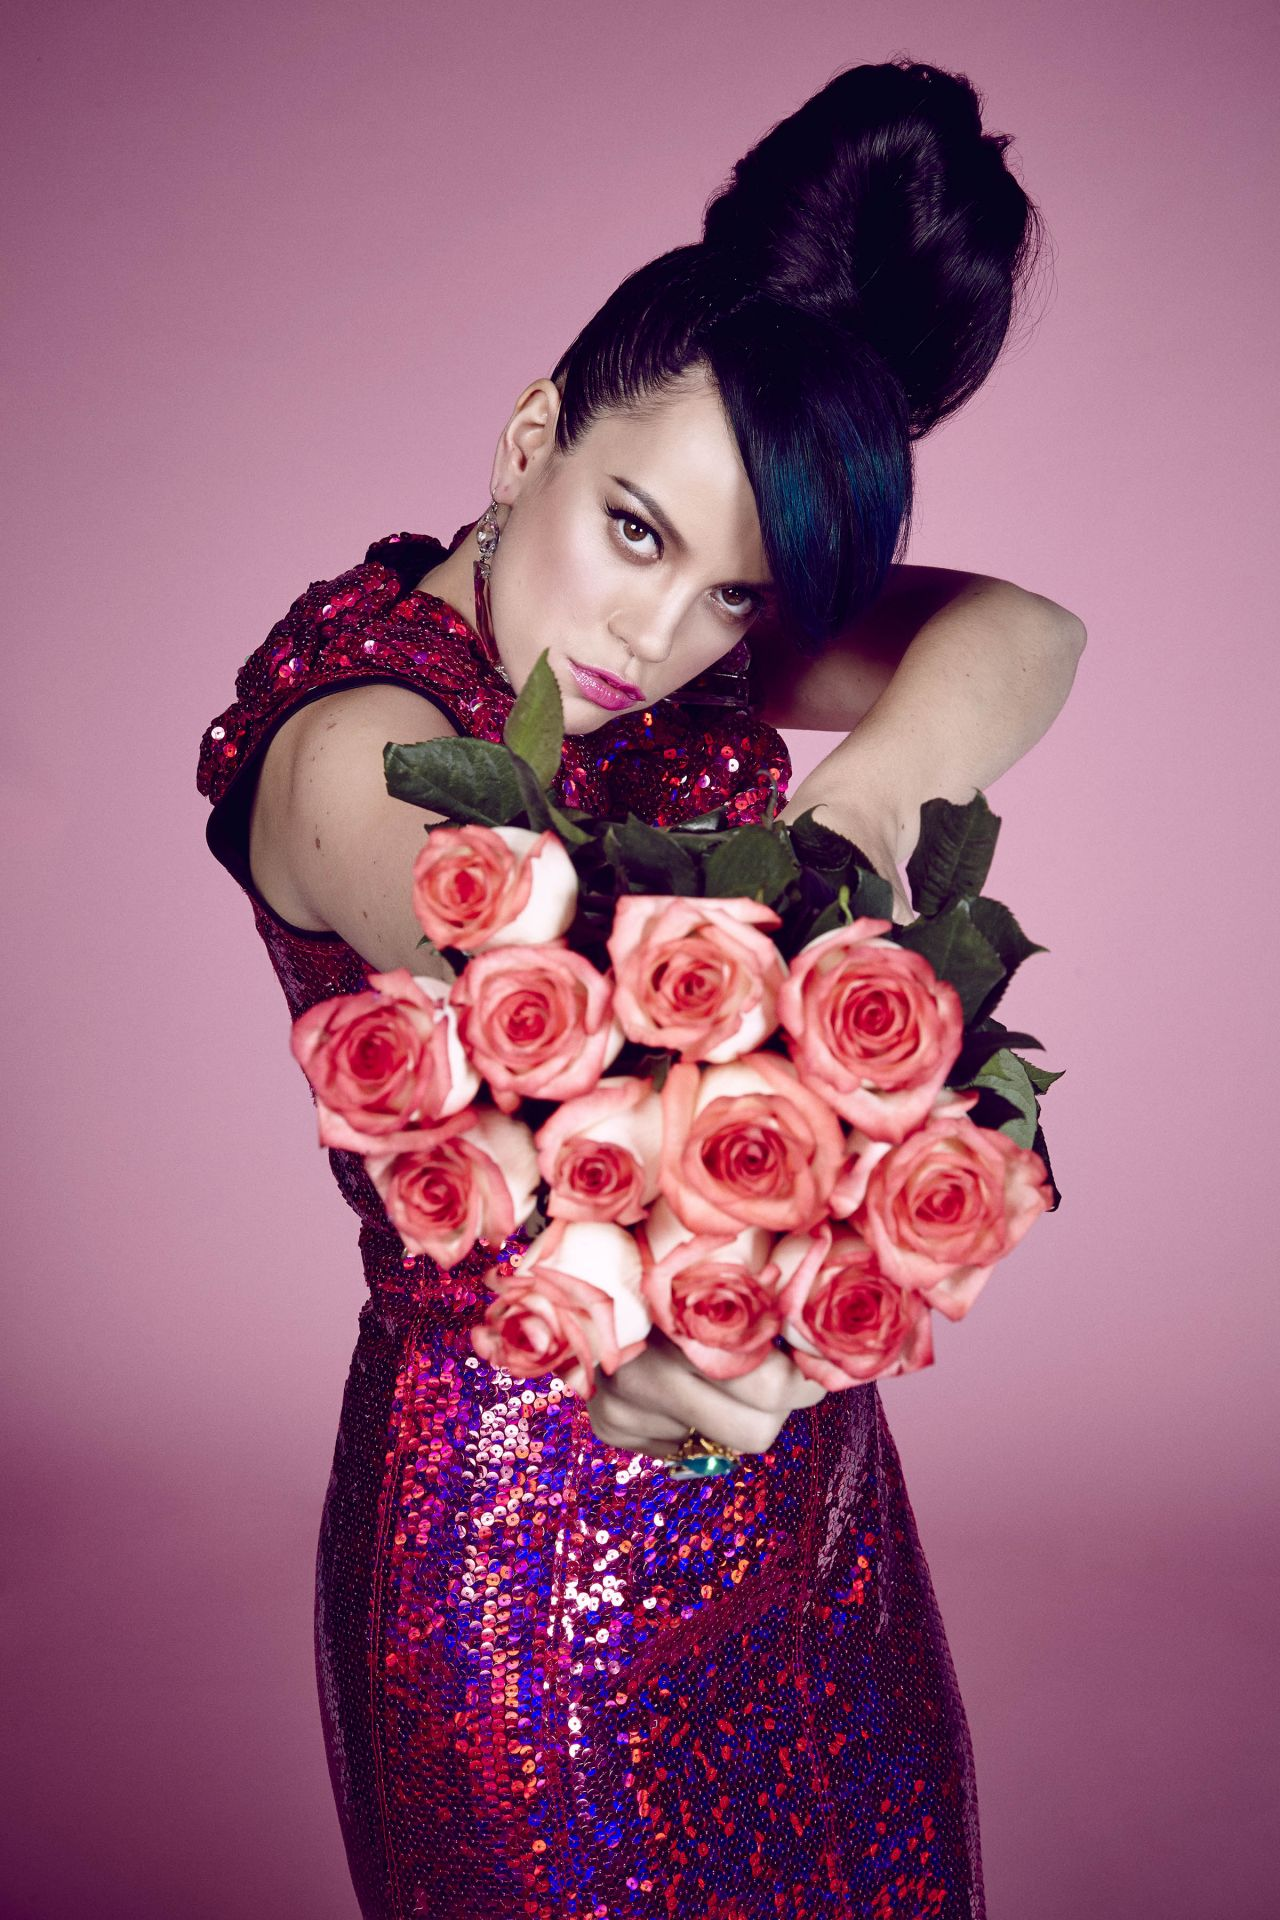 Lily Allen Nme Photoshoot 2014